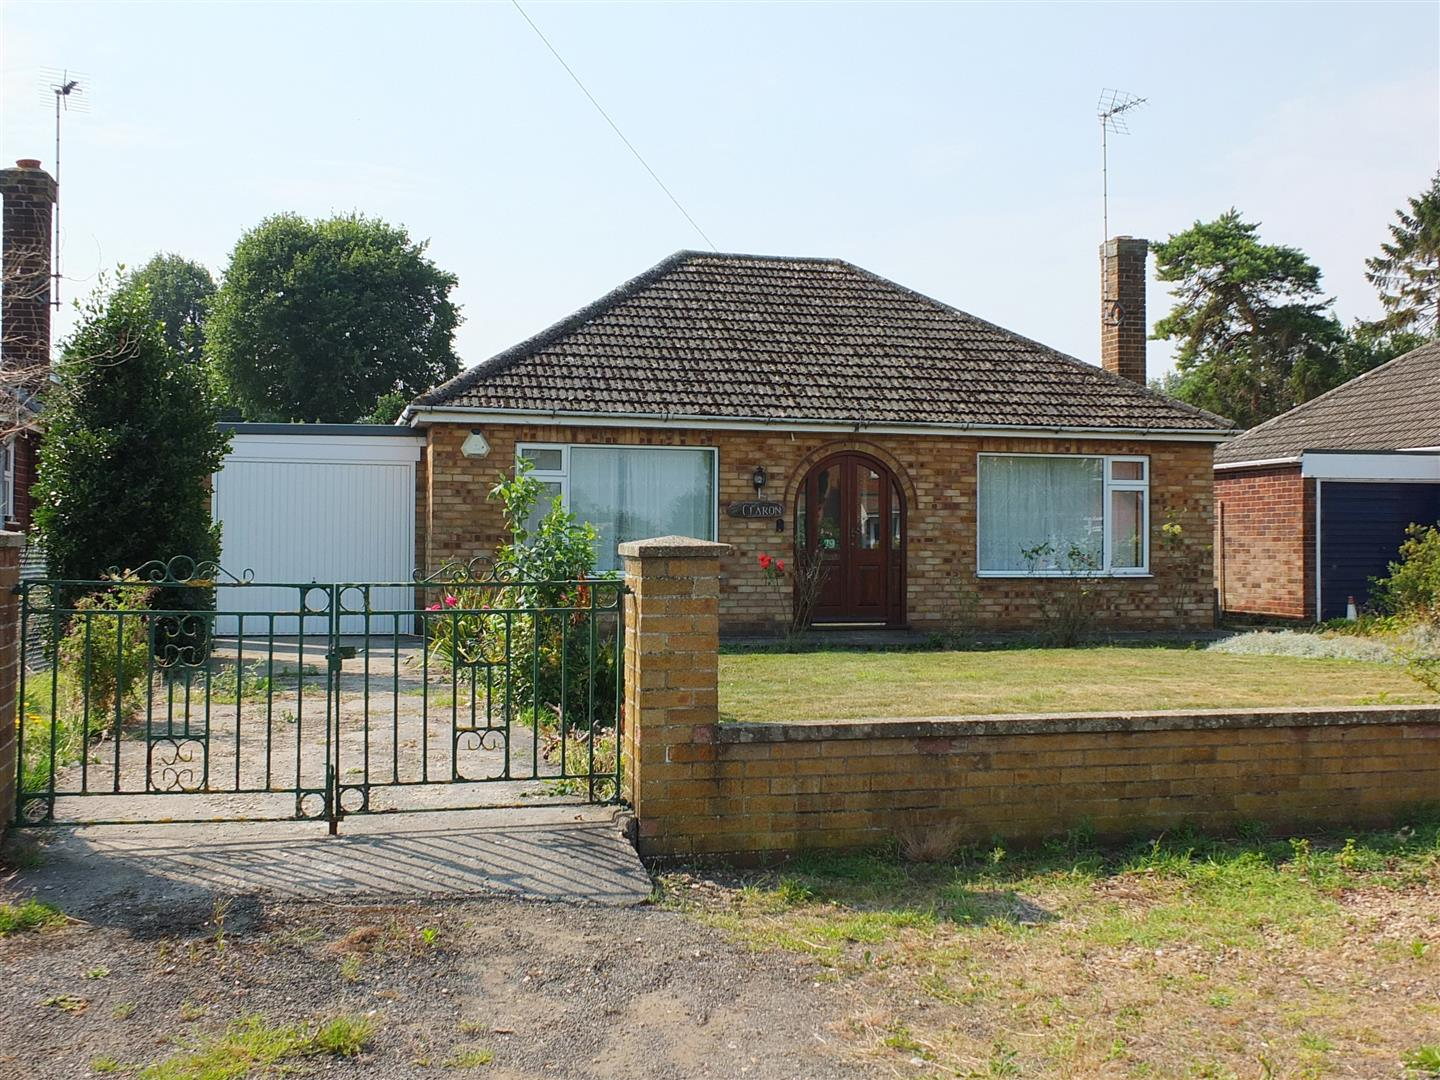 2 bed detached bungalow for sale in Long Sutton Spalding, PE12 9DR, PE12